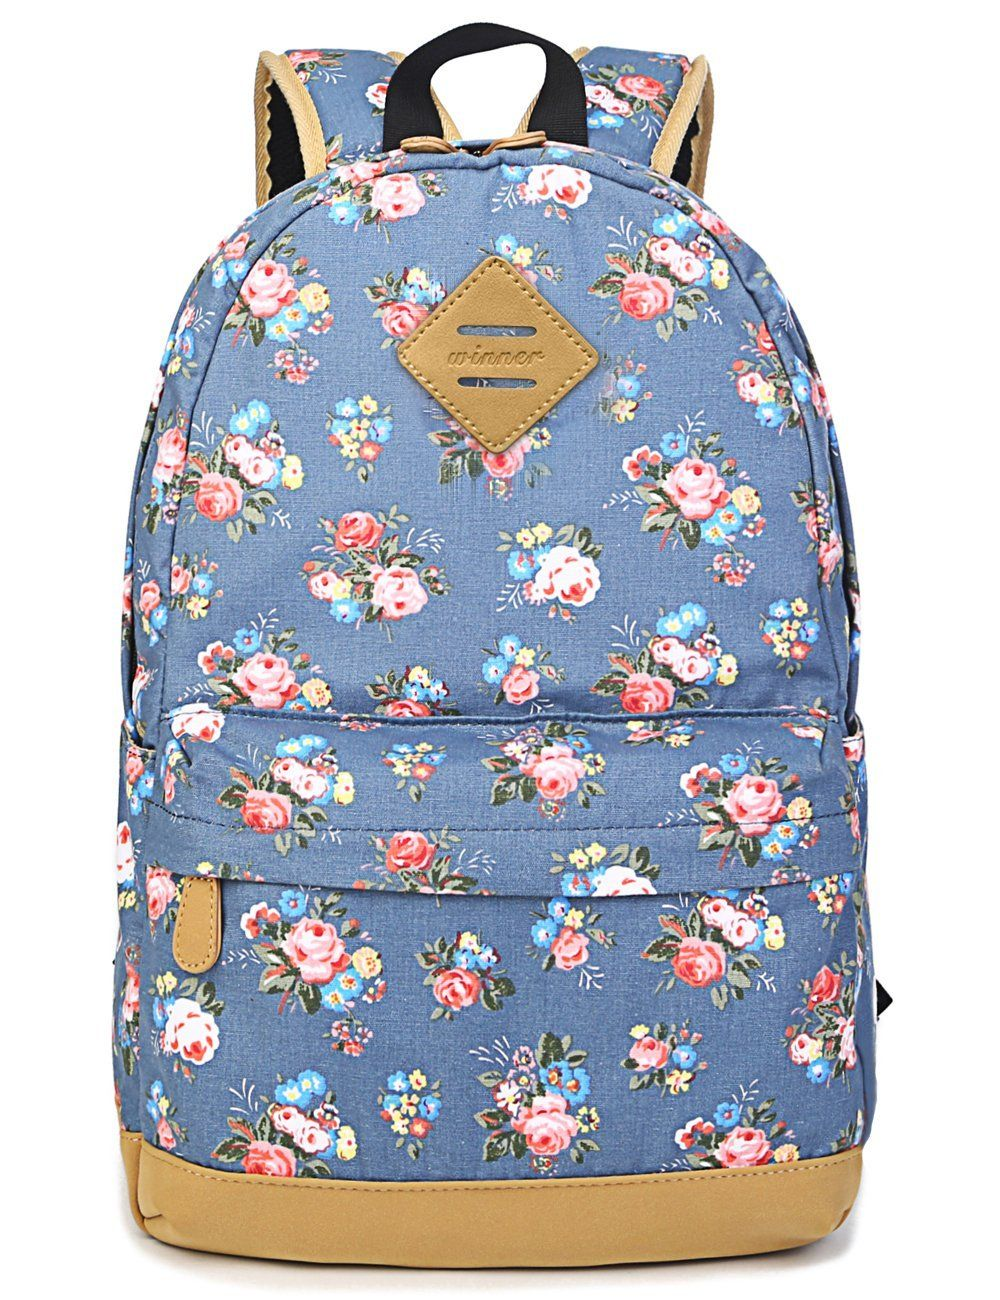 8052a033c8b5 ... Canvas Laptop Backpack Cute Travel School College Shoulder Bag Bookbags Daypack  for Teenage Girls Students Women-With Laptop Compartment Black  Clothing